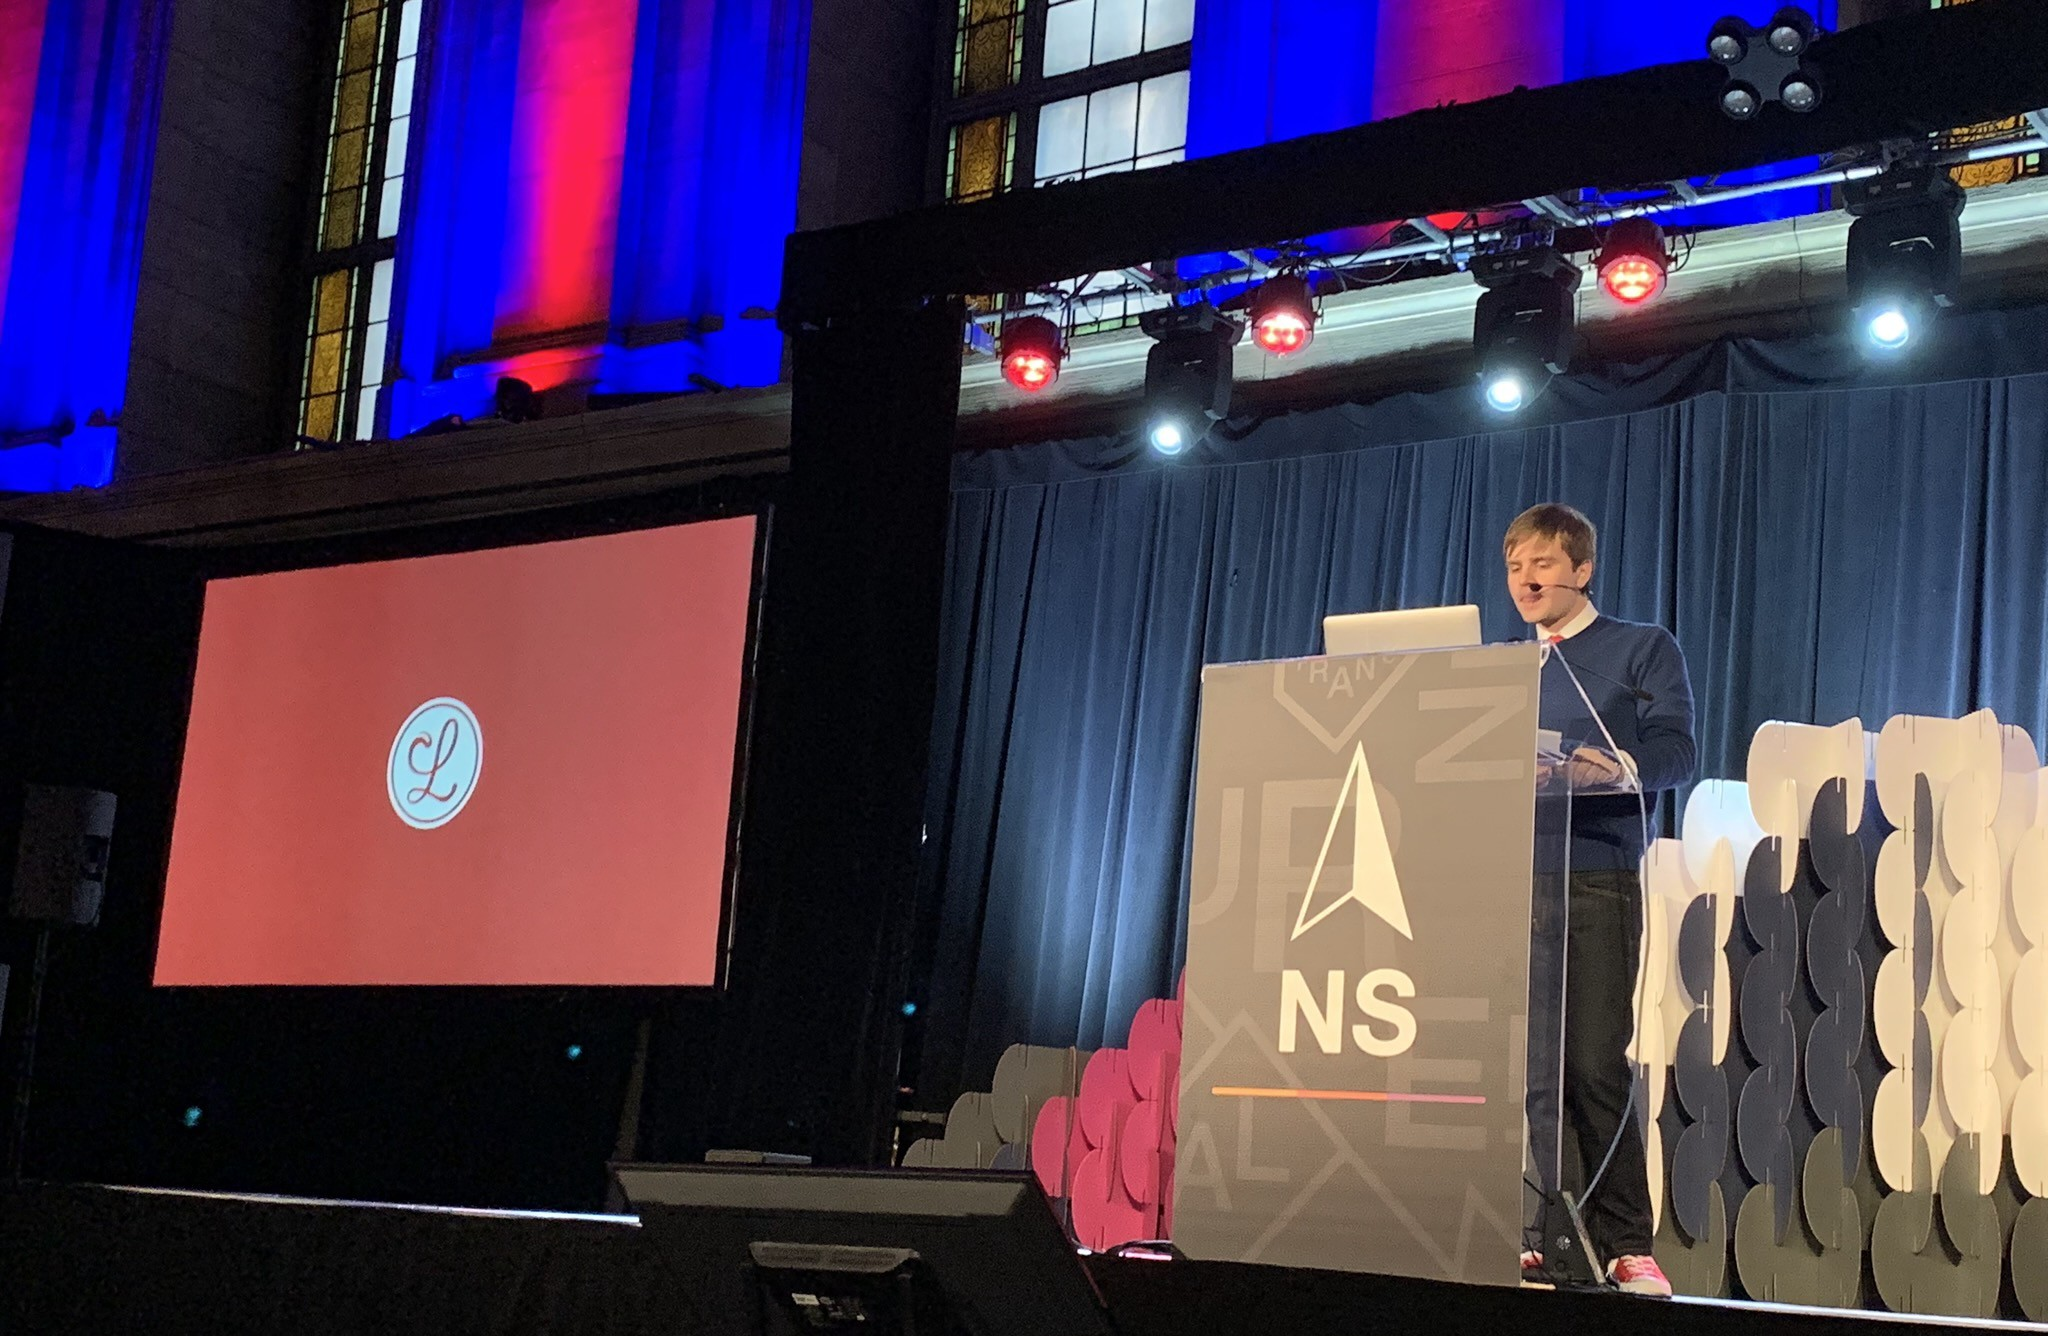 Matt onstage at NSNorth in front of a slide with the Lickability logo.